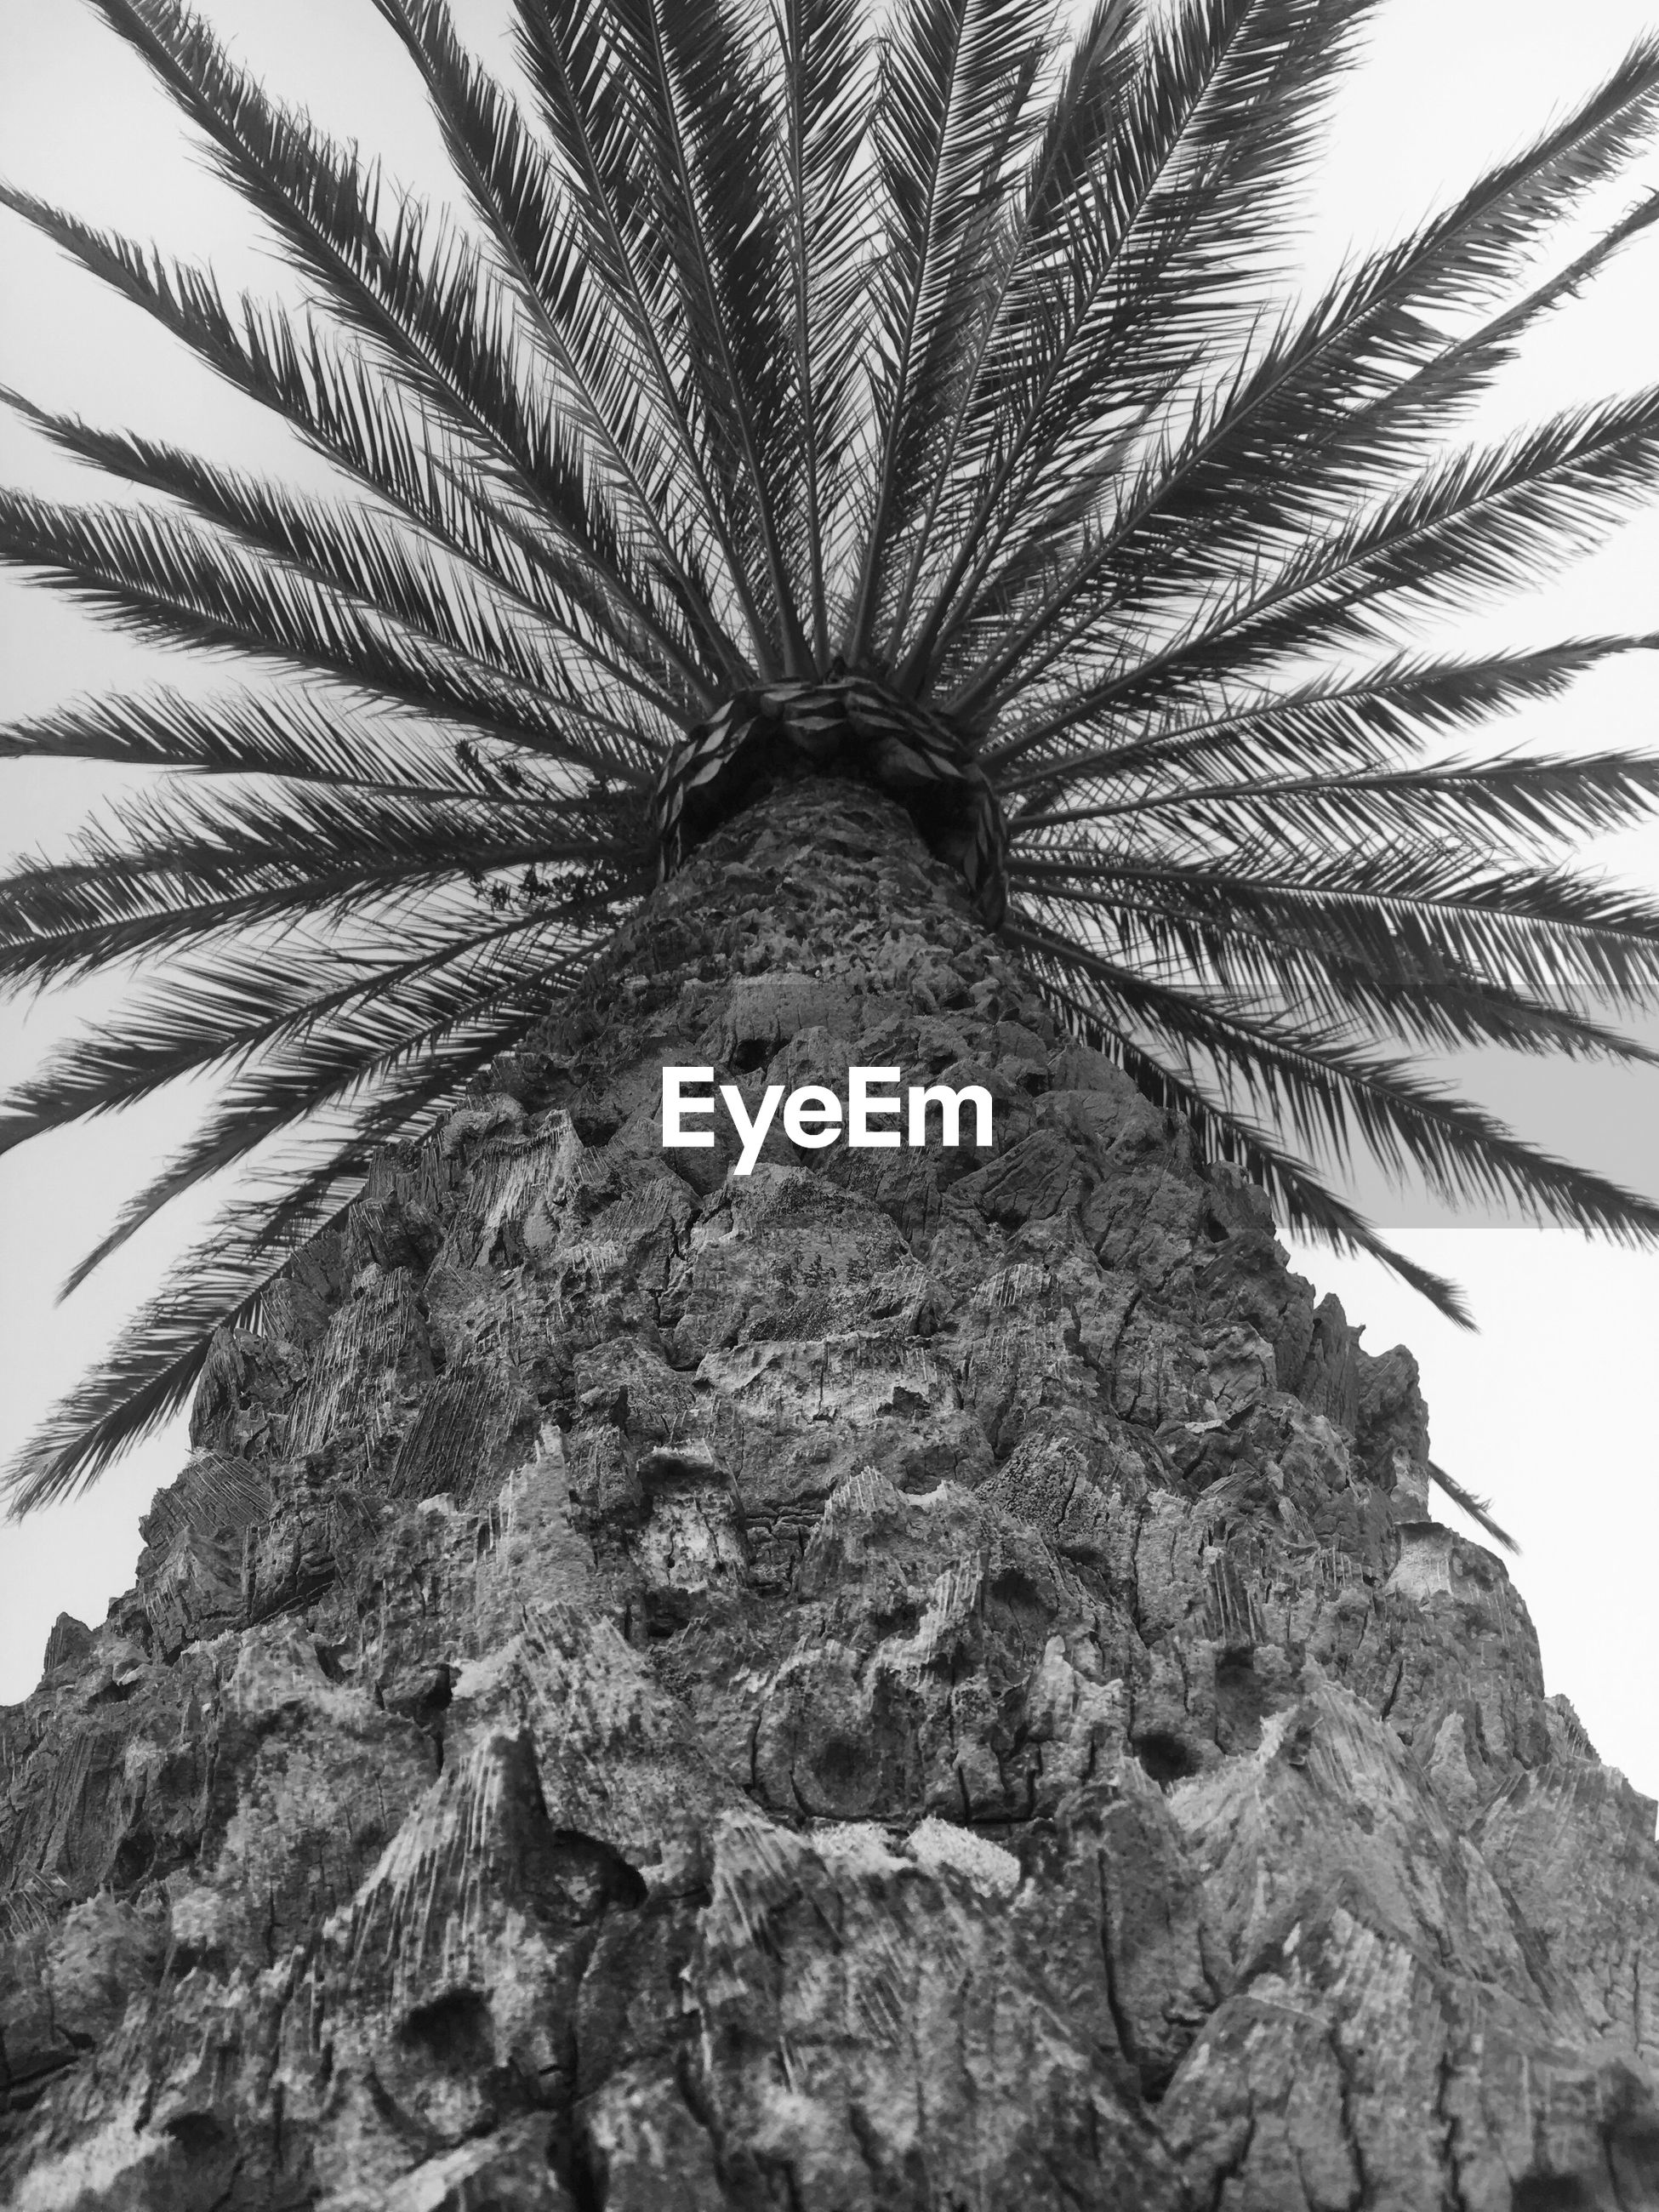 CLOSE-UP LOW ANGLE VIEW OF PALM TREE AGAINST SKY